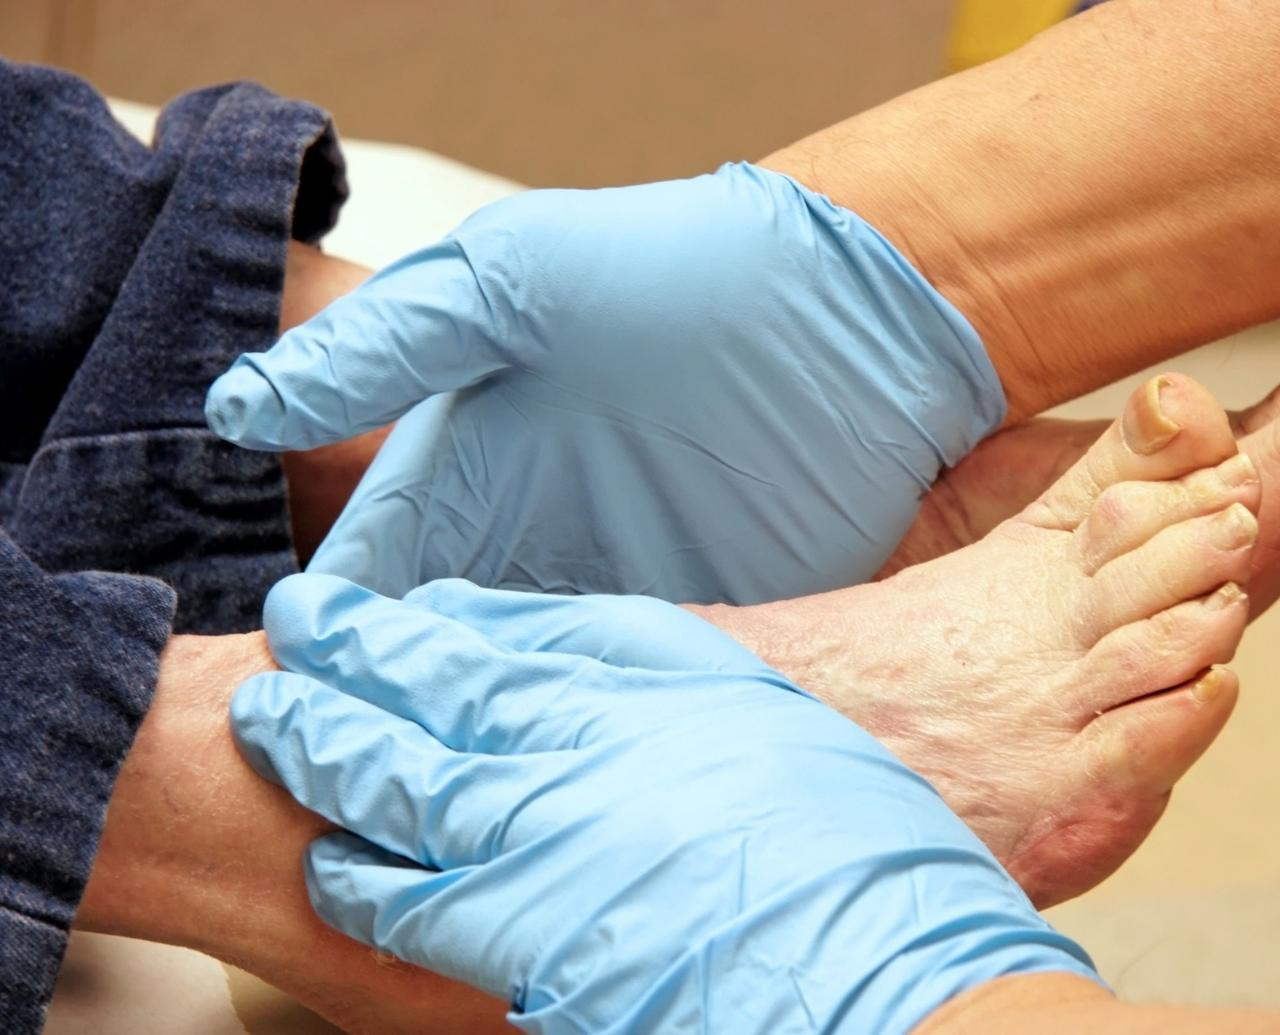 physical exam performed with safety gloves